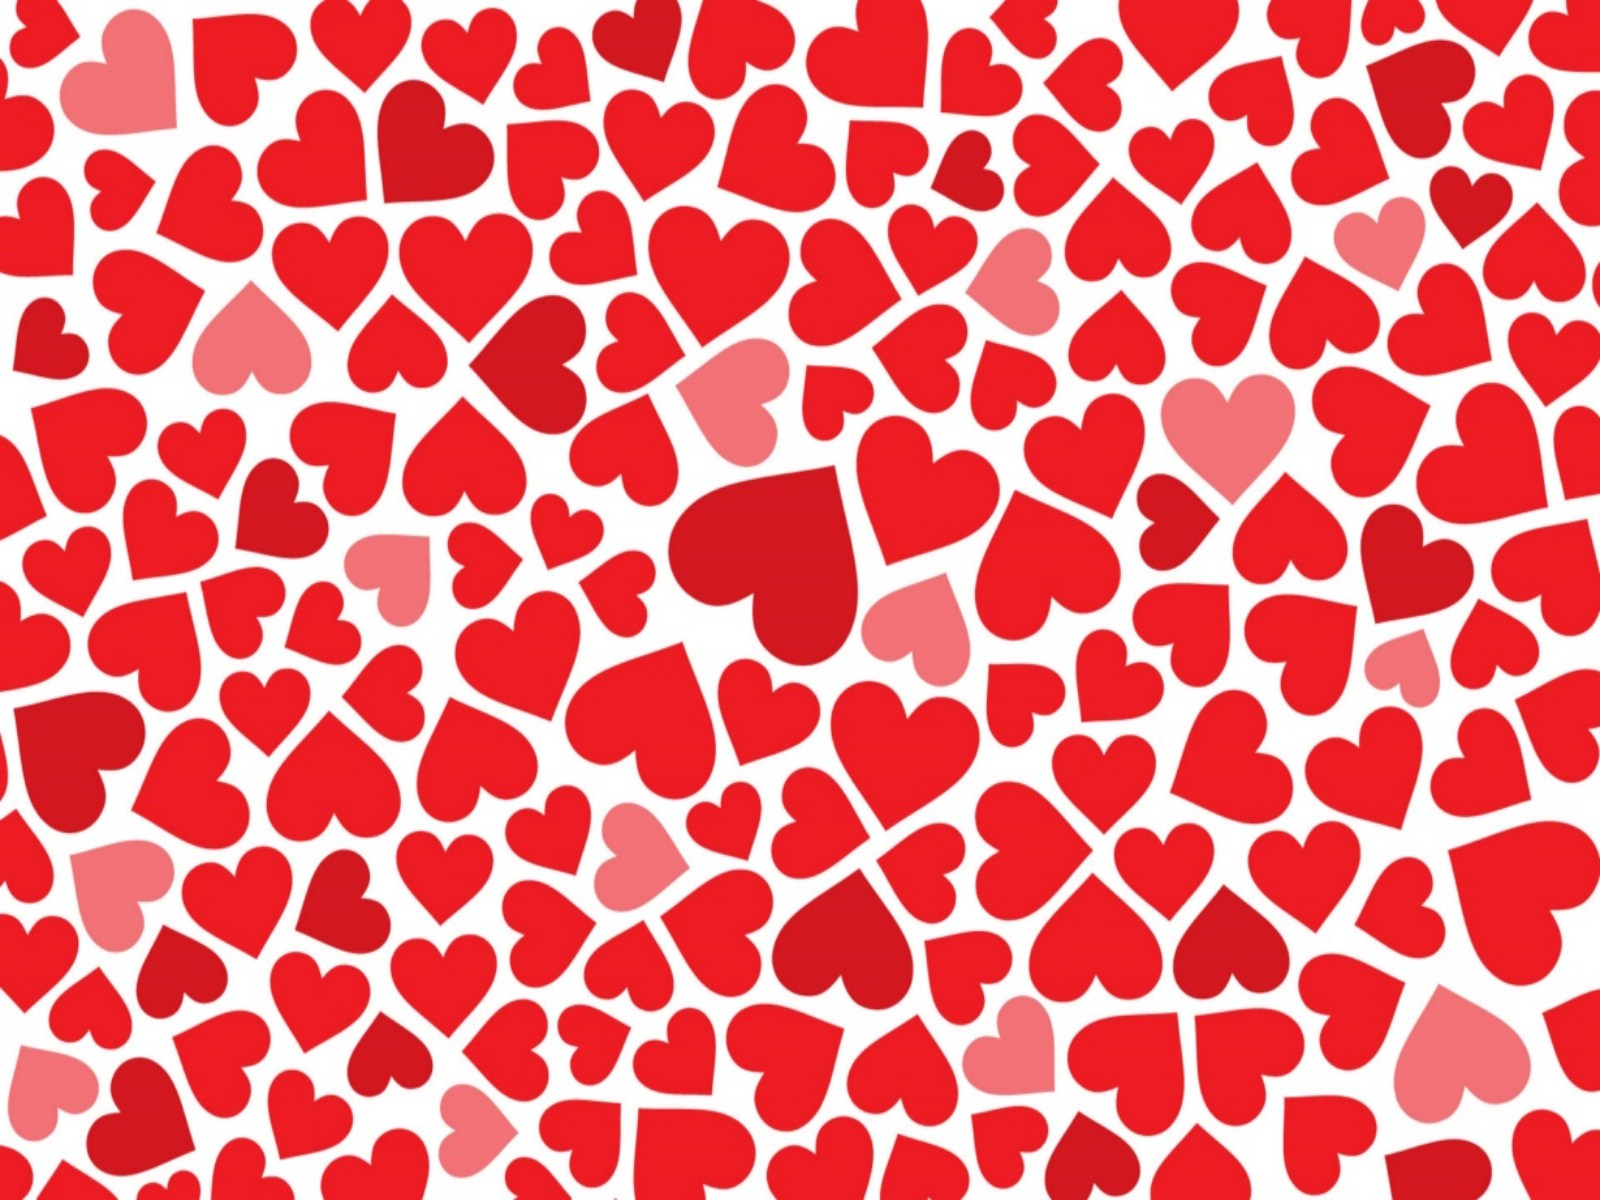 Reframing the love-hate we feel for Valentine's Day